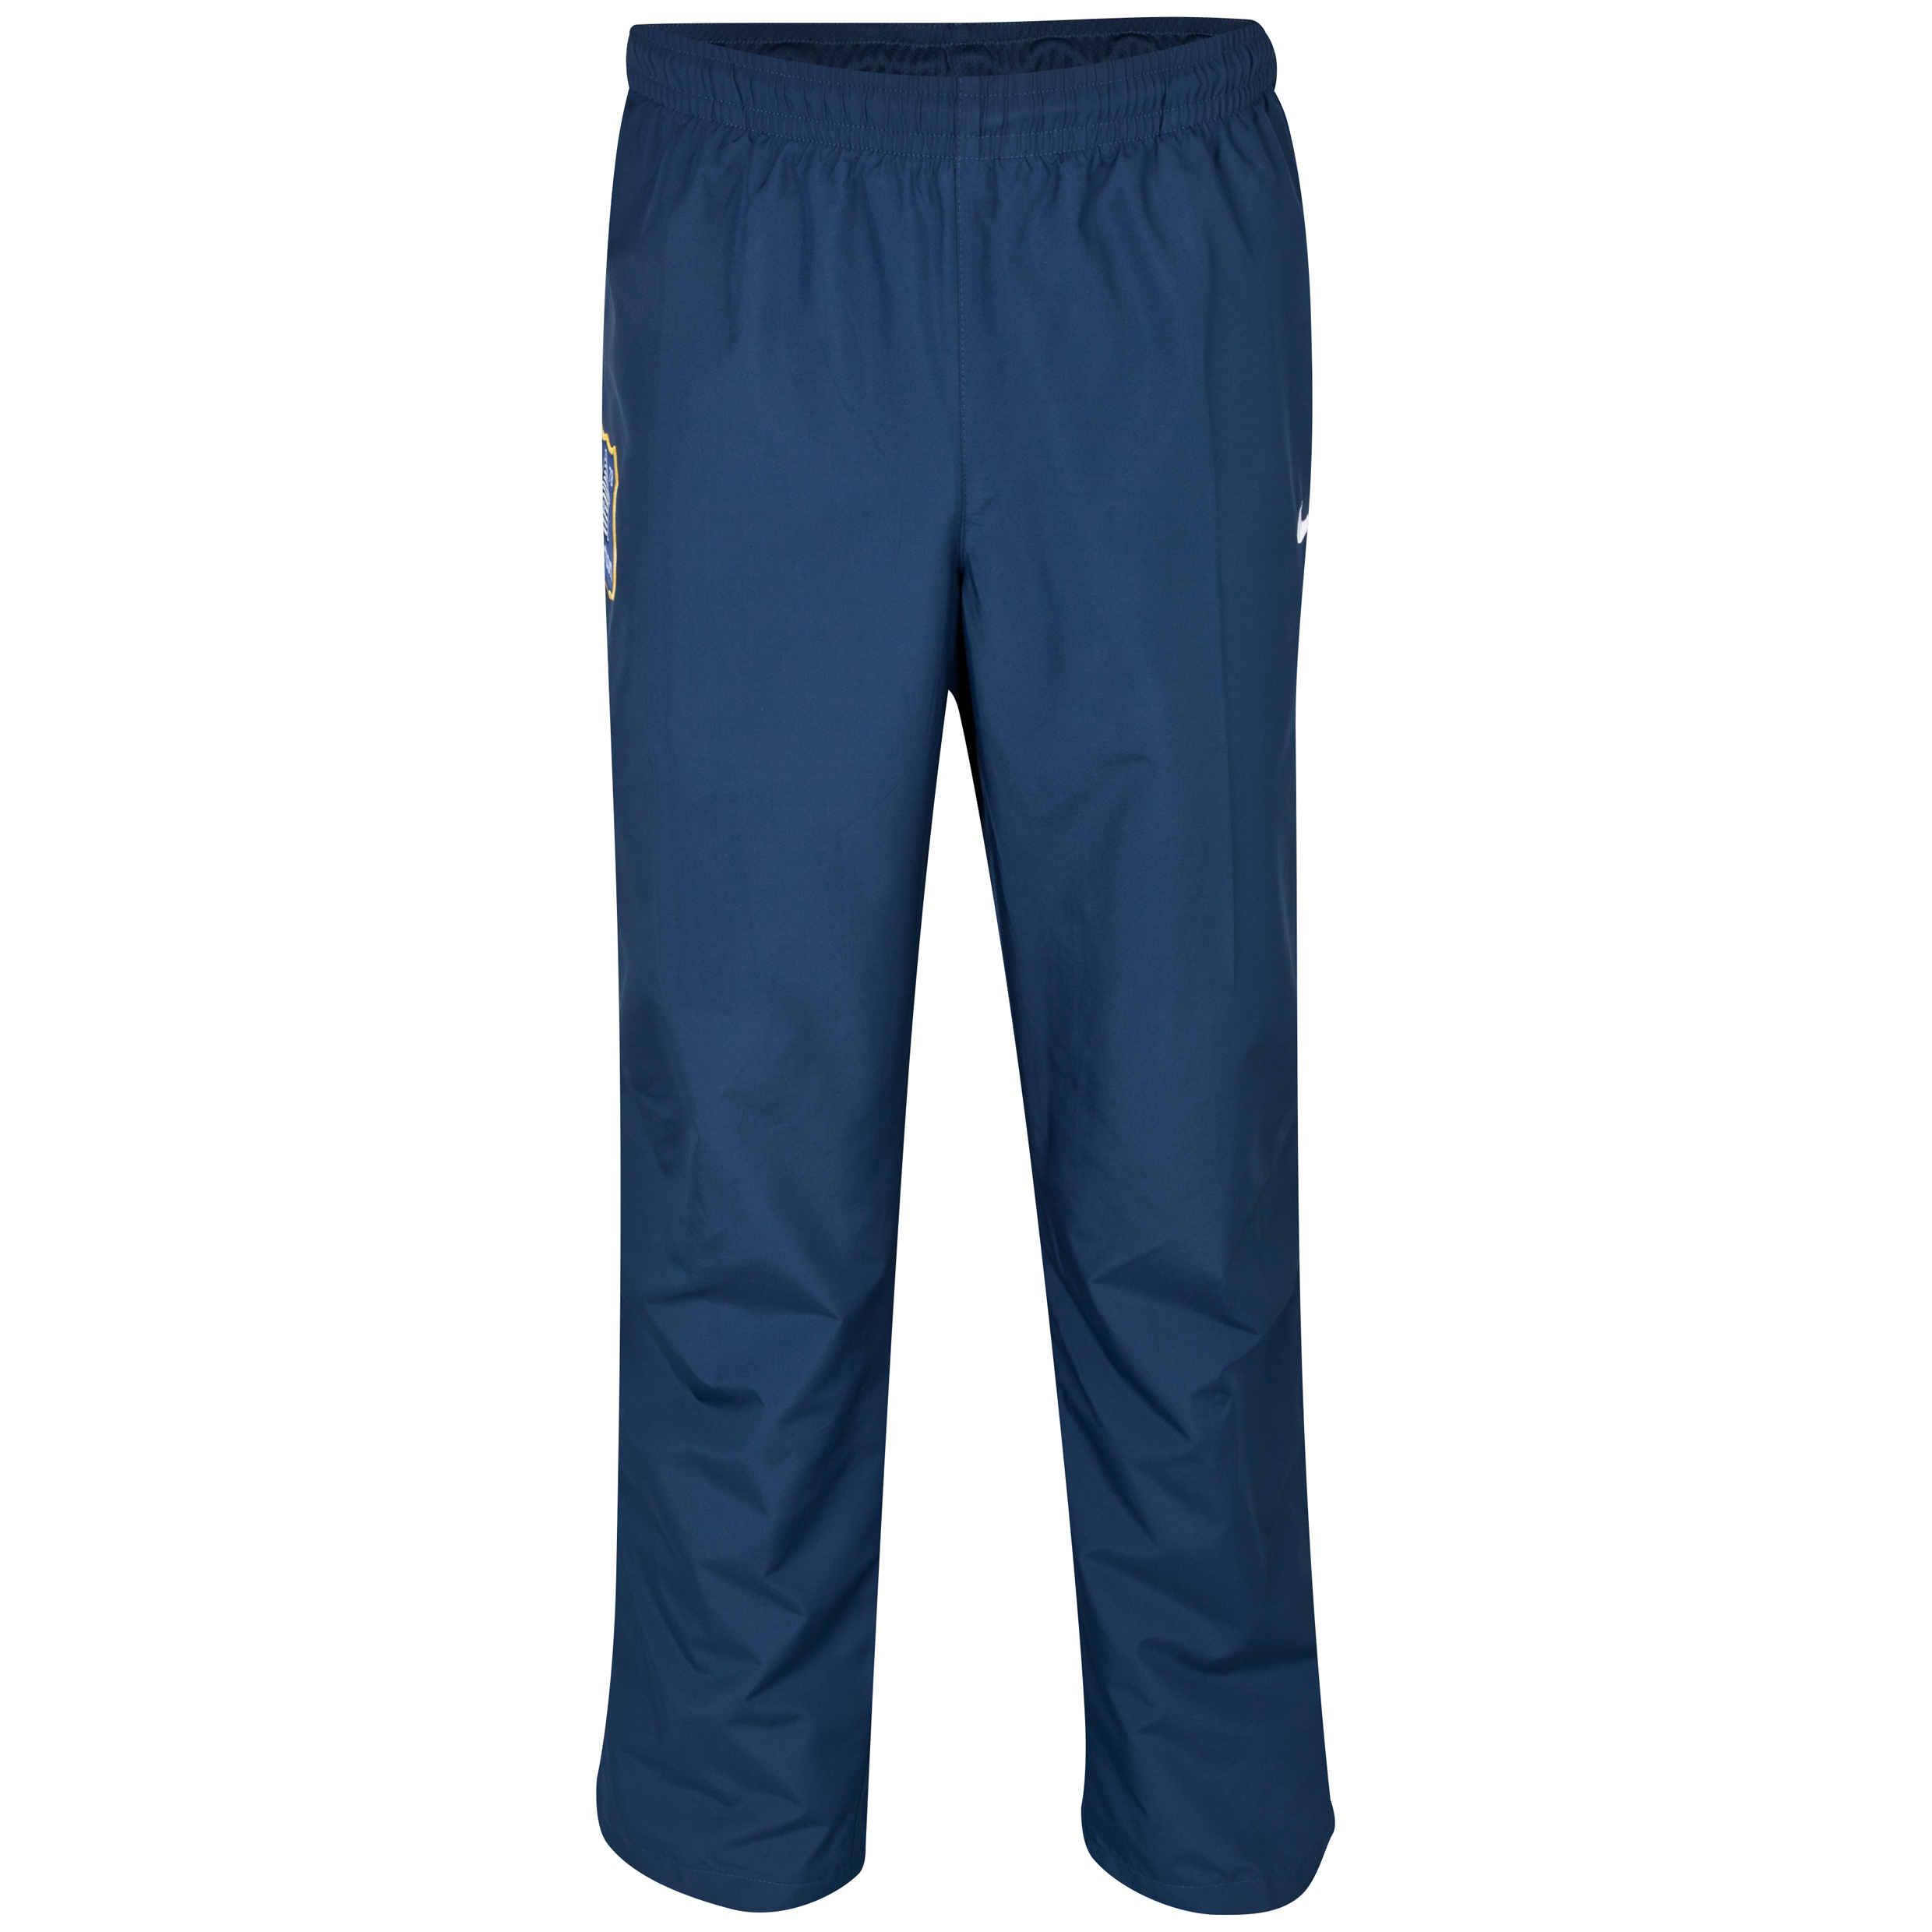 Everton Sideline Track Pant - Junior Navy